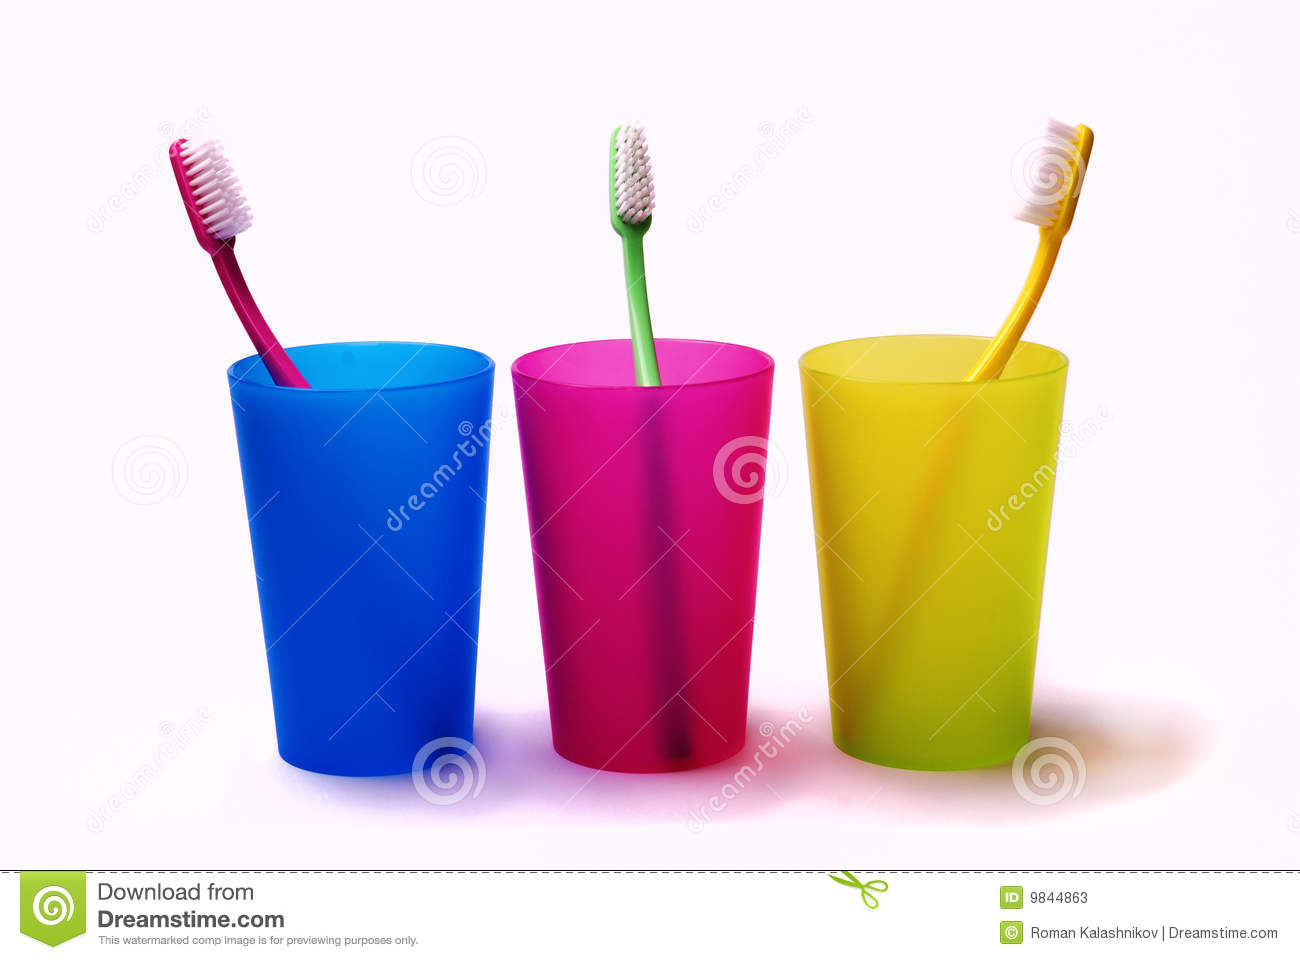 Toothbrushes nei supporti di colore